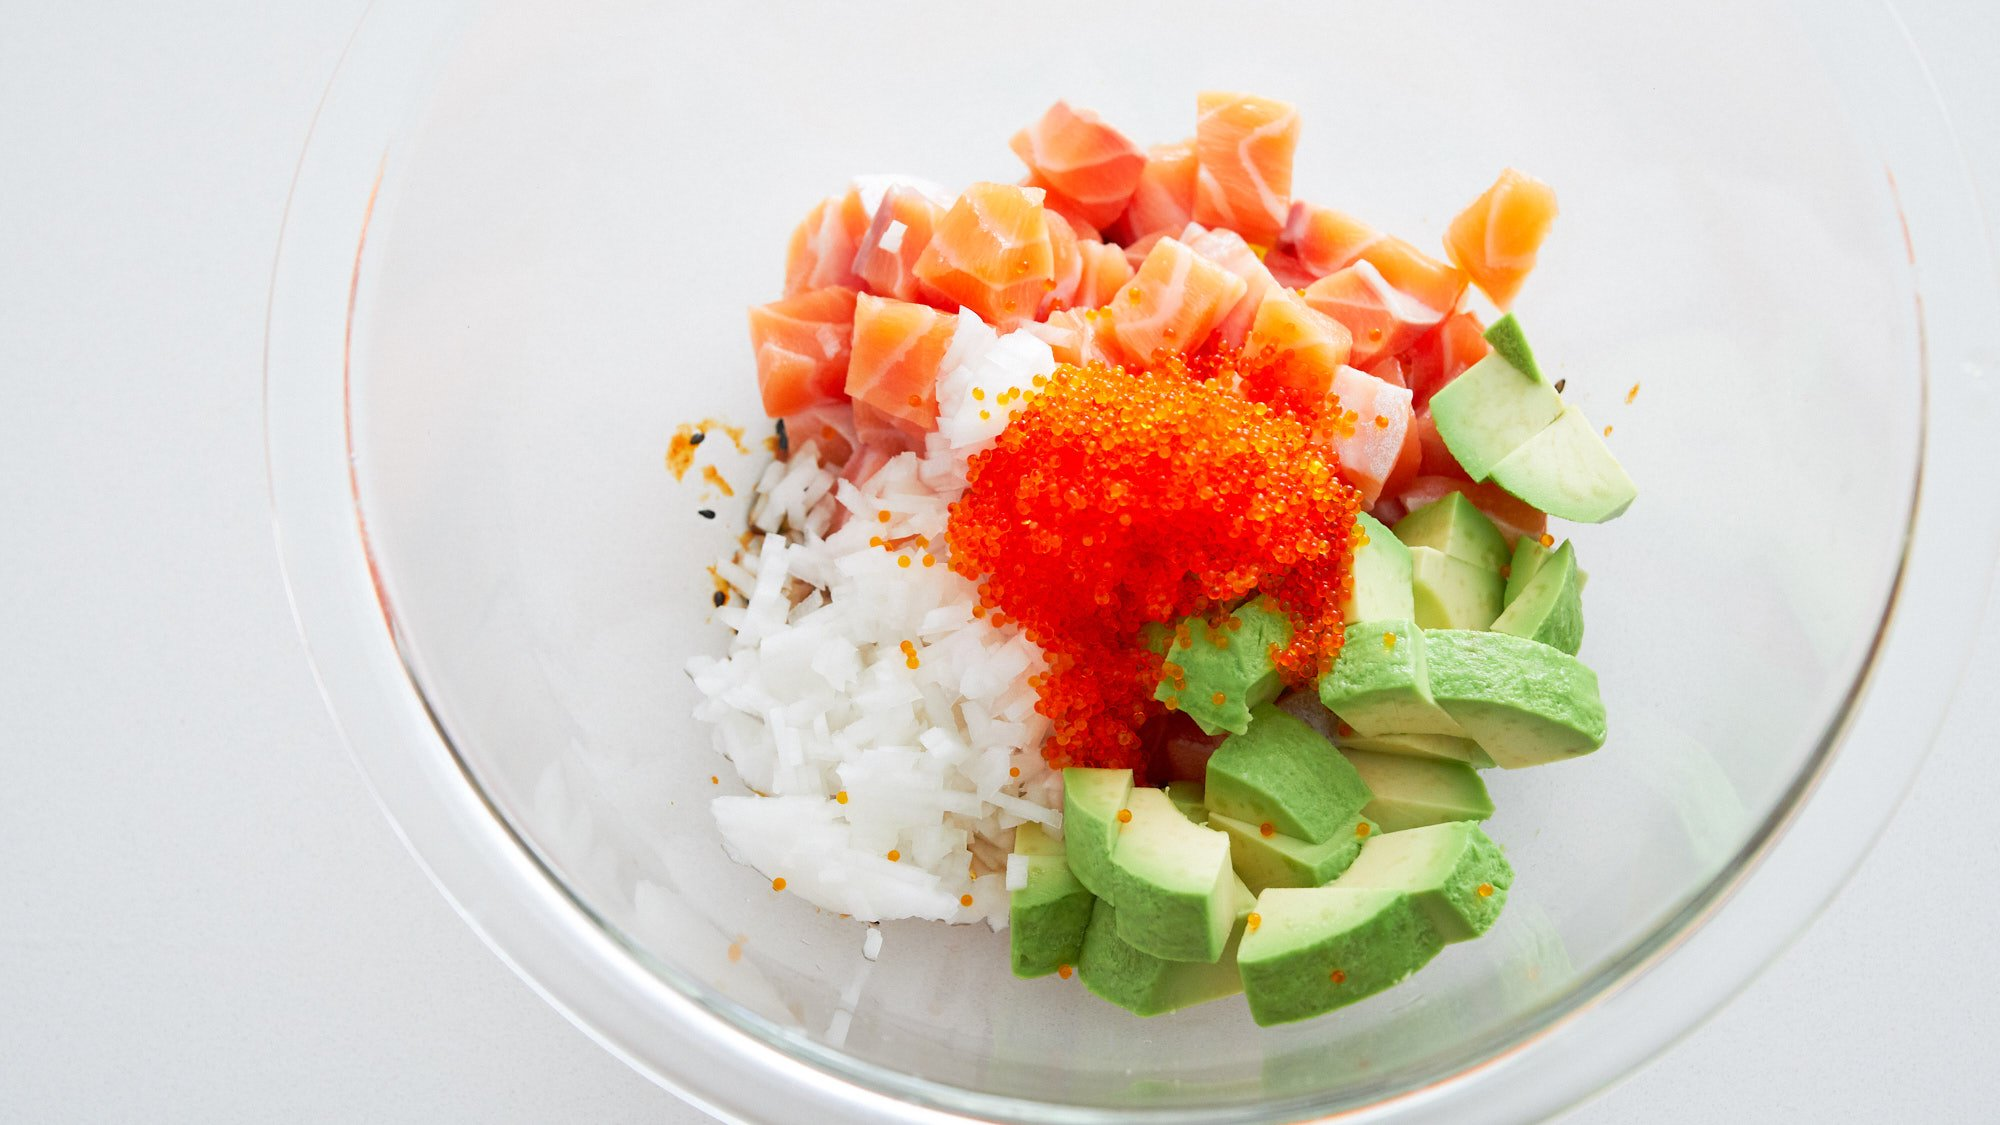 Ingredients for spicy salmon poke. Raw salmon, sweet onions, avocado, and tobiko.